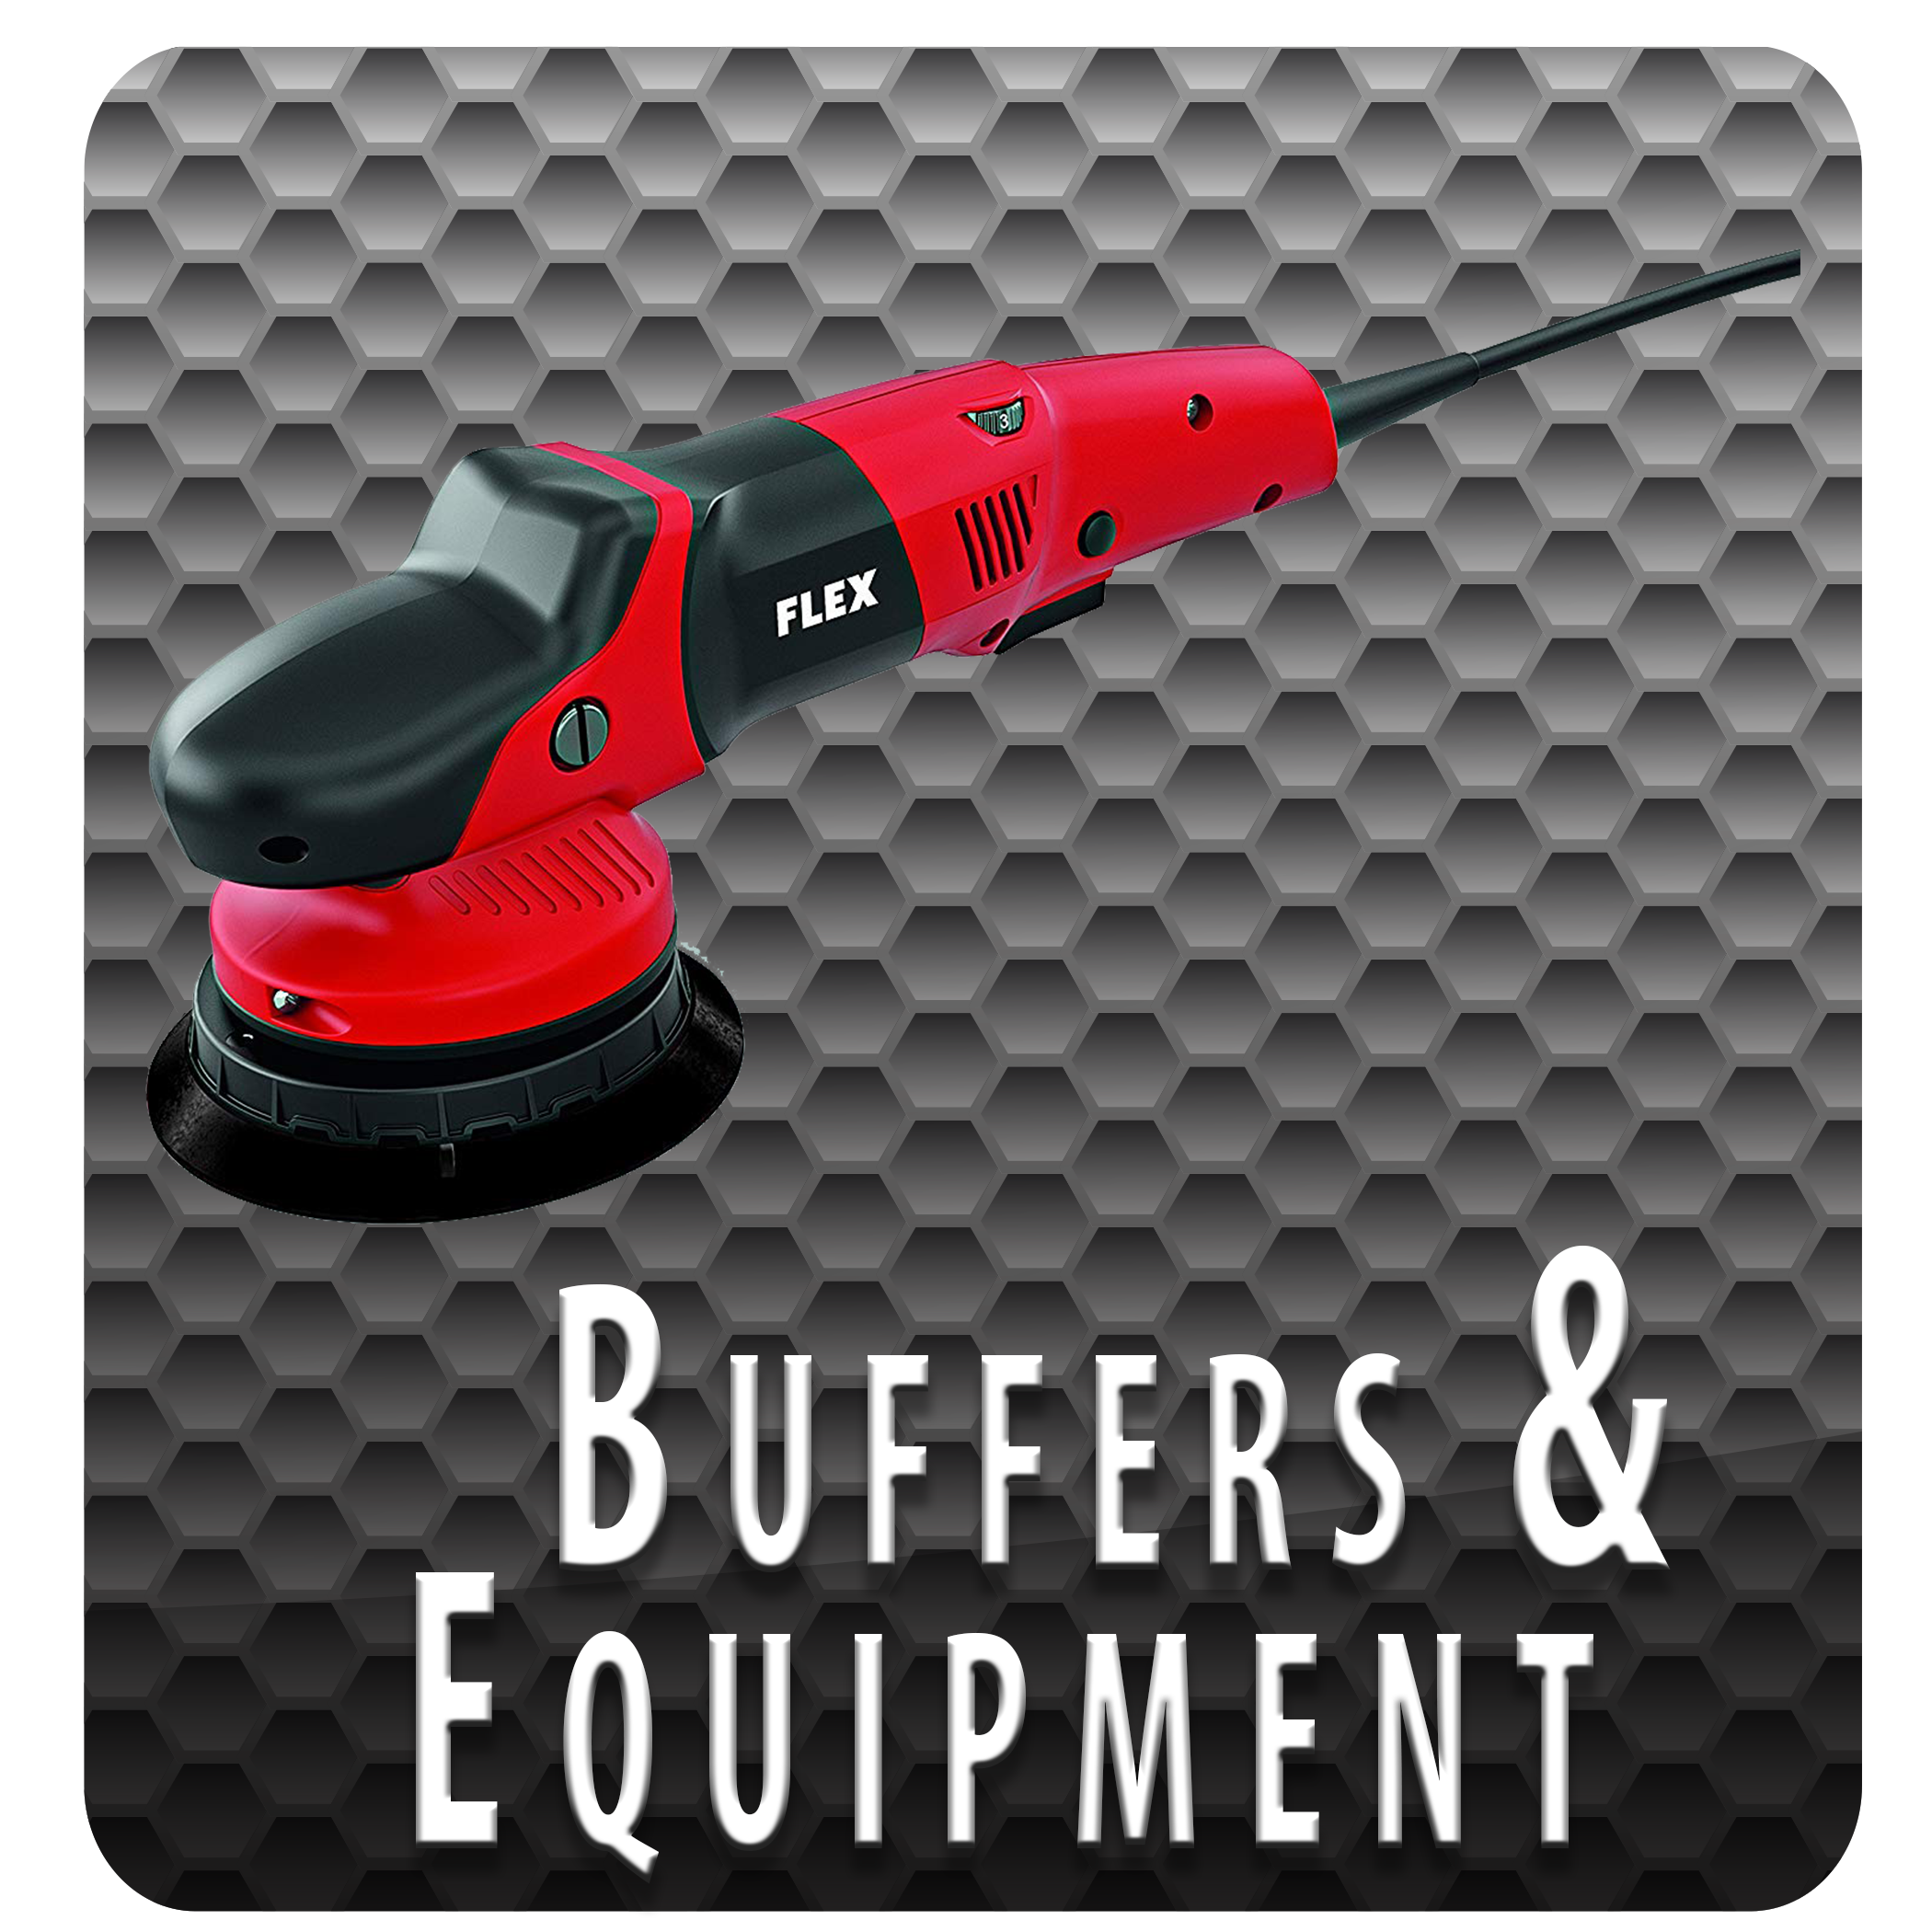 buffers and equipment.png